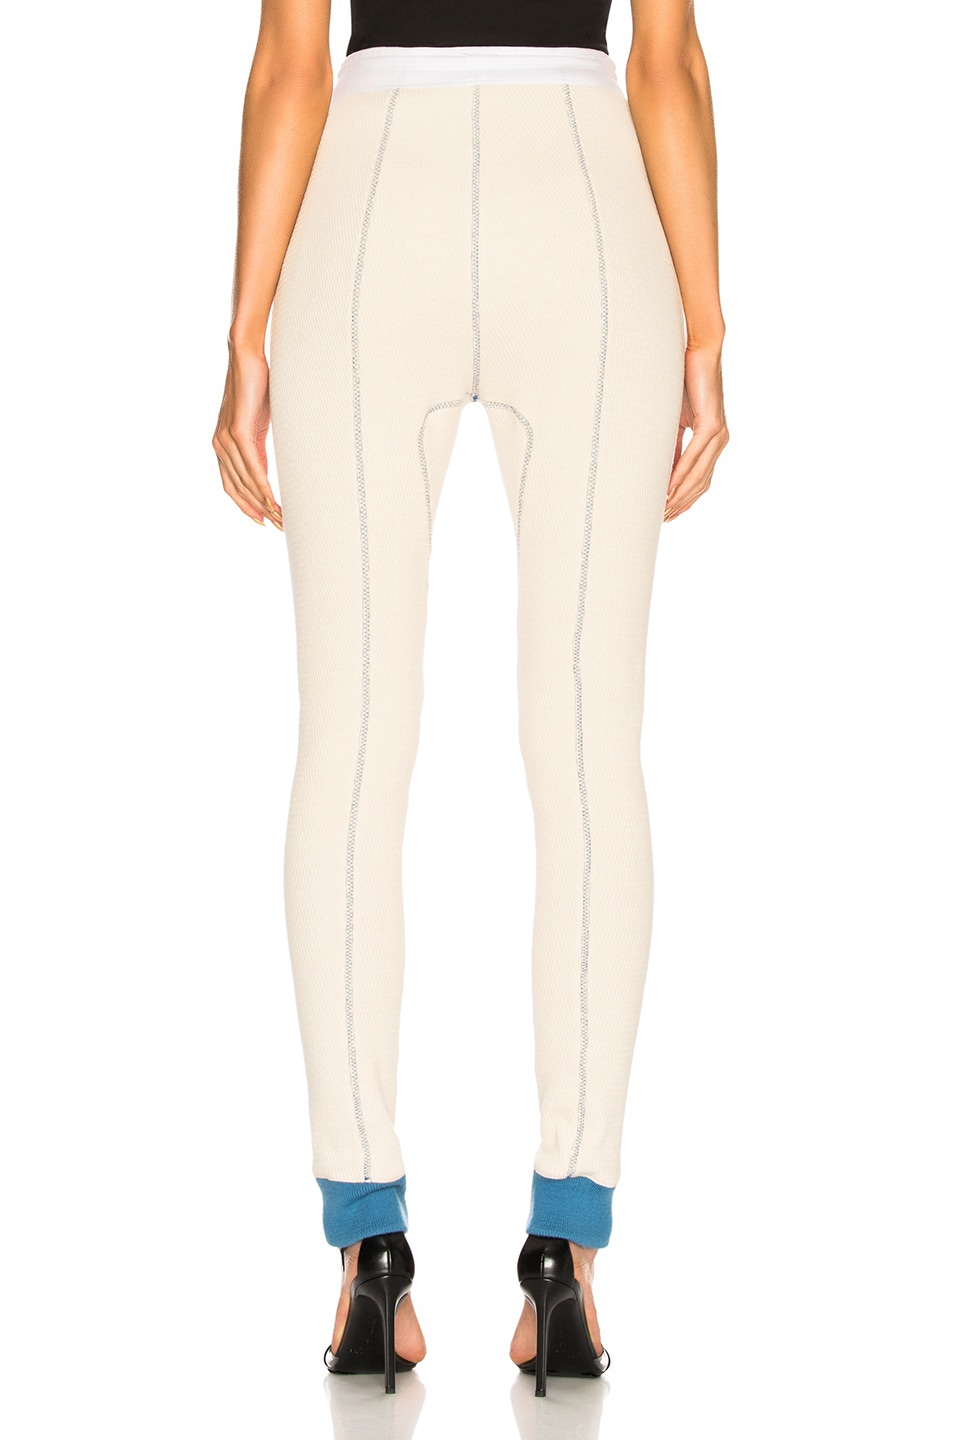 Image 3 of CALVIN KLEIN 205W39NYC High Waisted Leggings in Ecru & Optic White